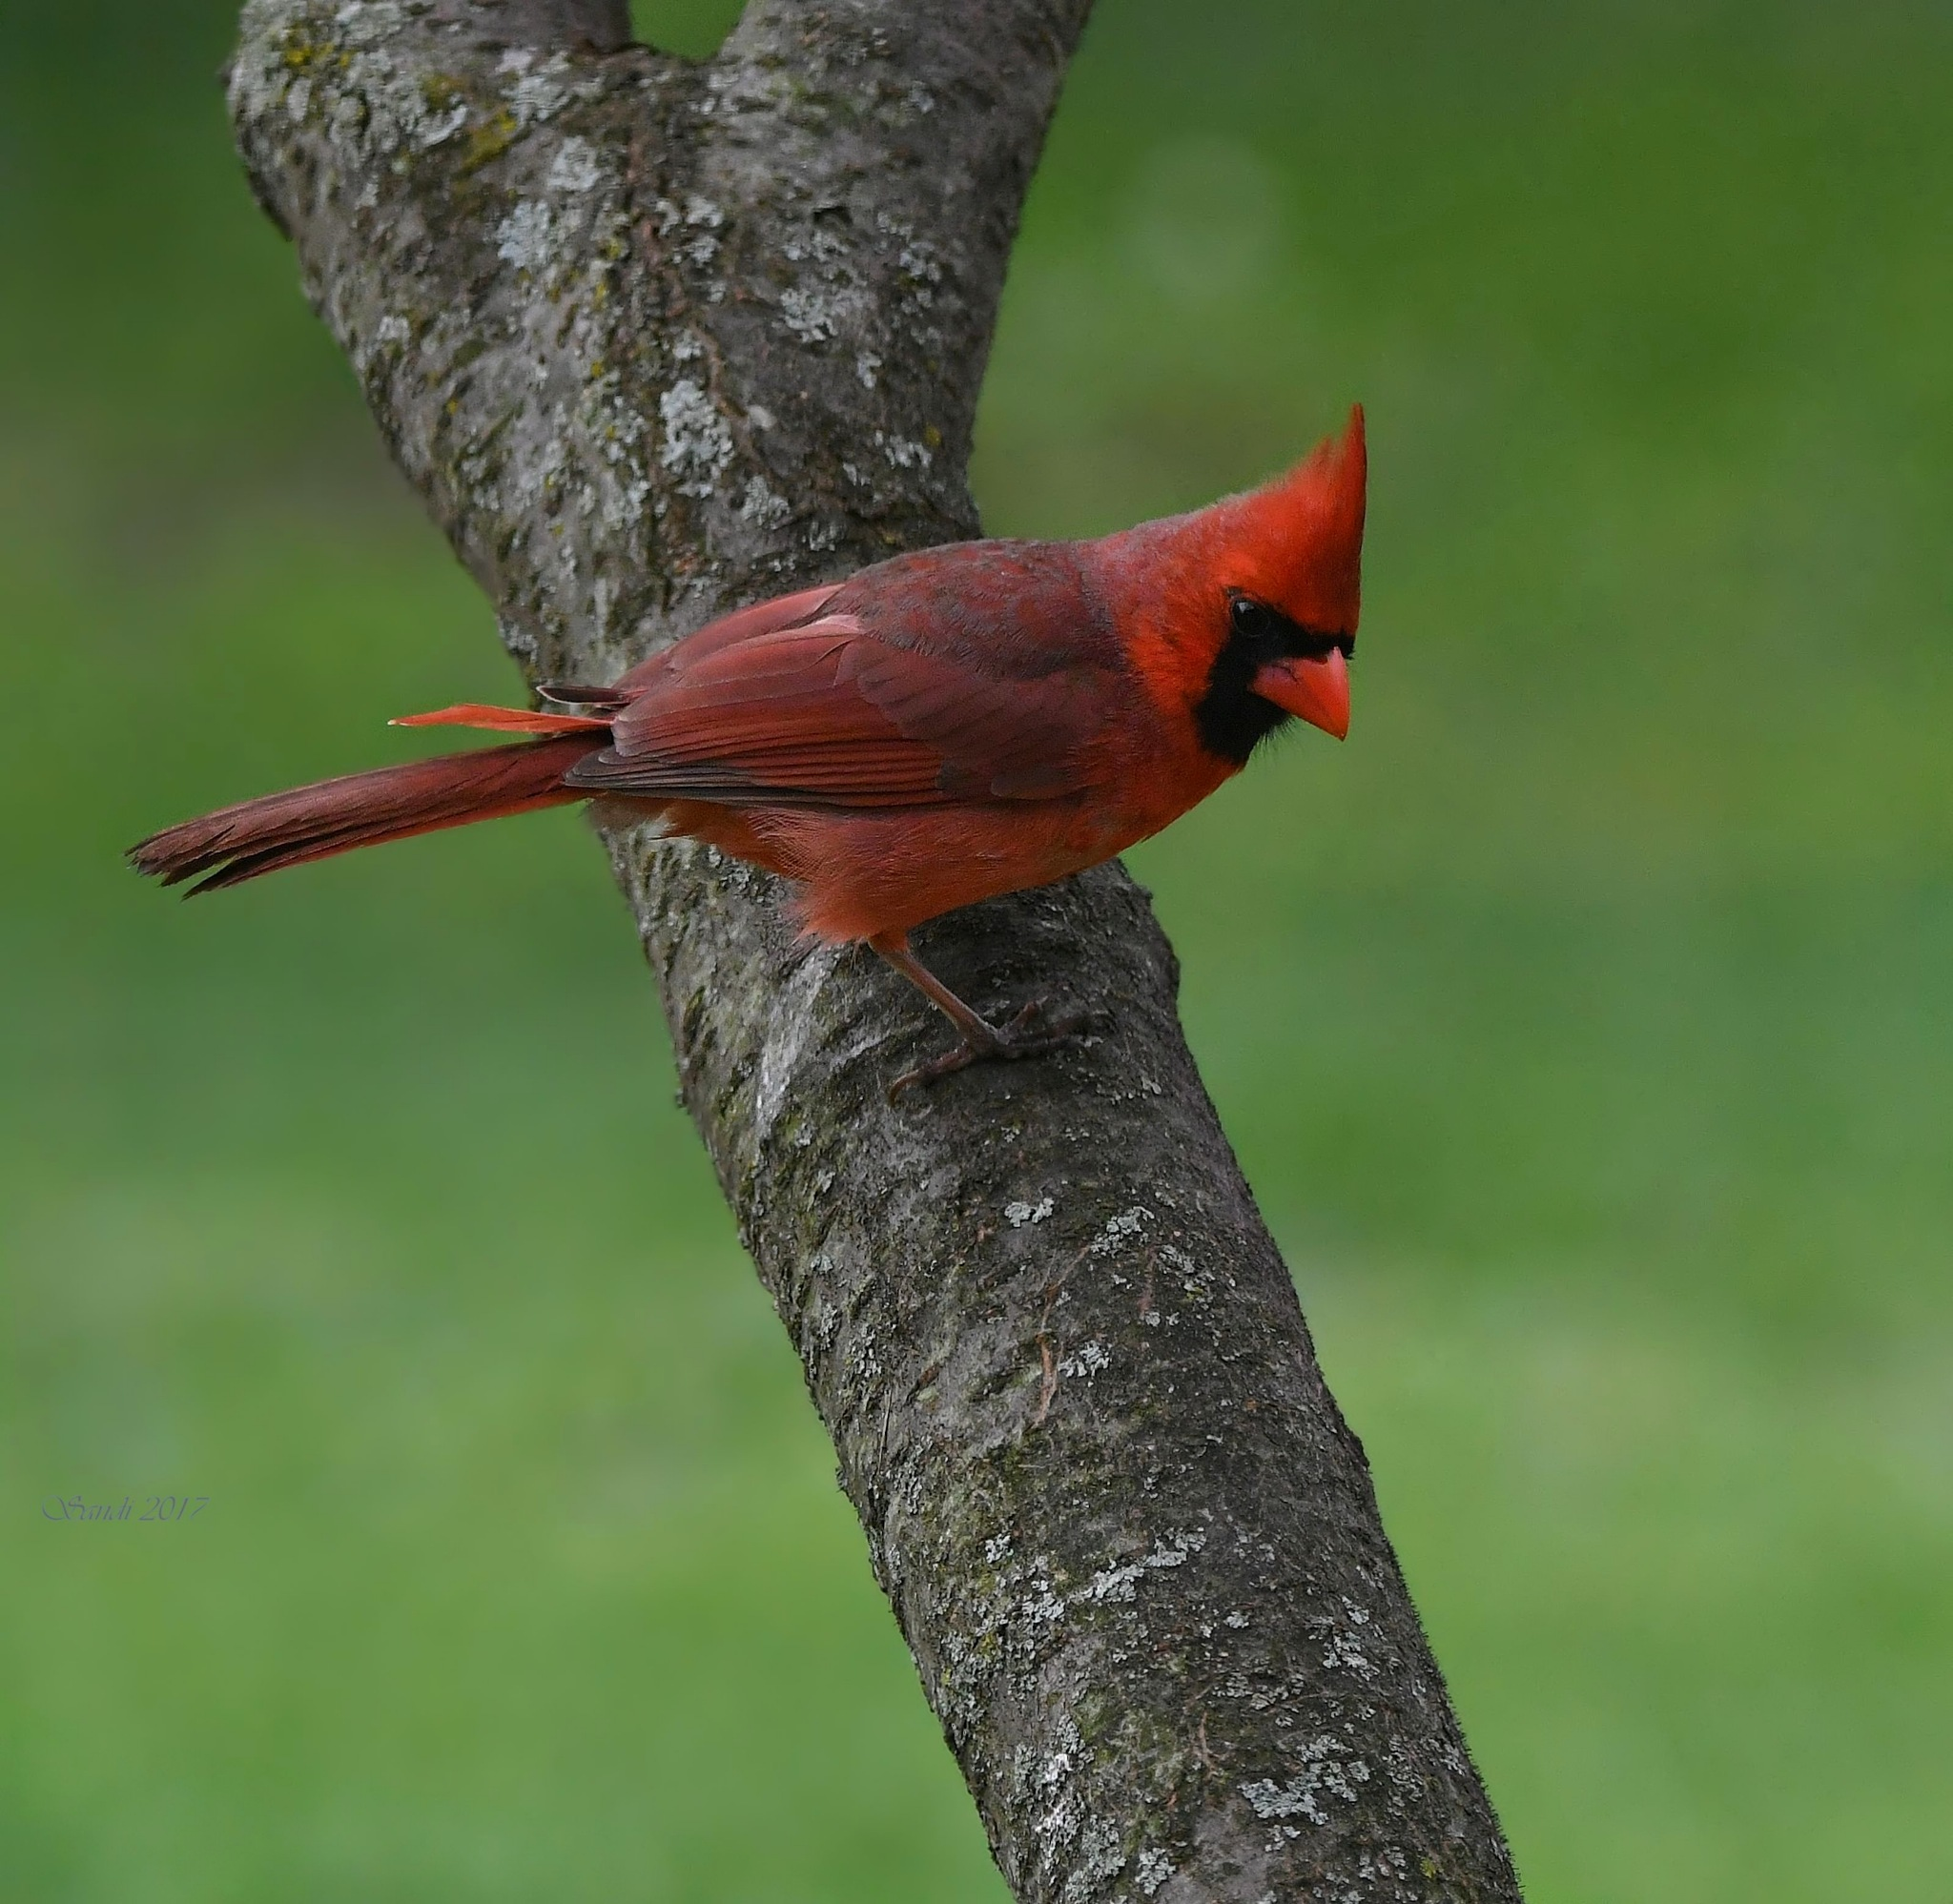 The Male Cardinal by tiggs